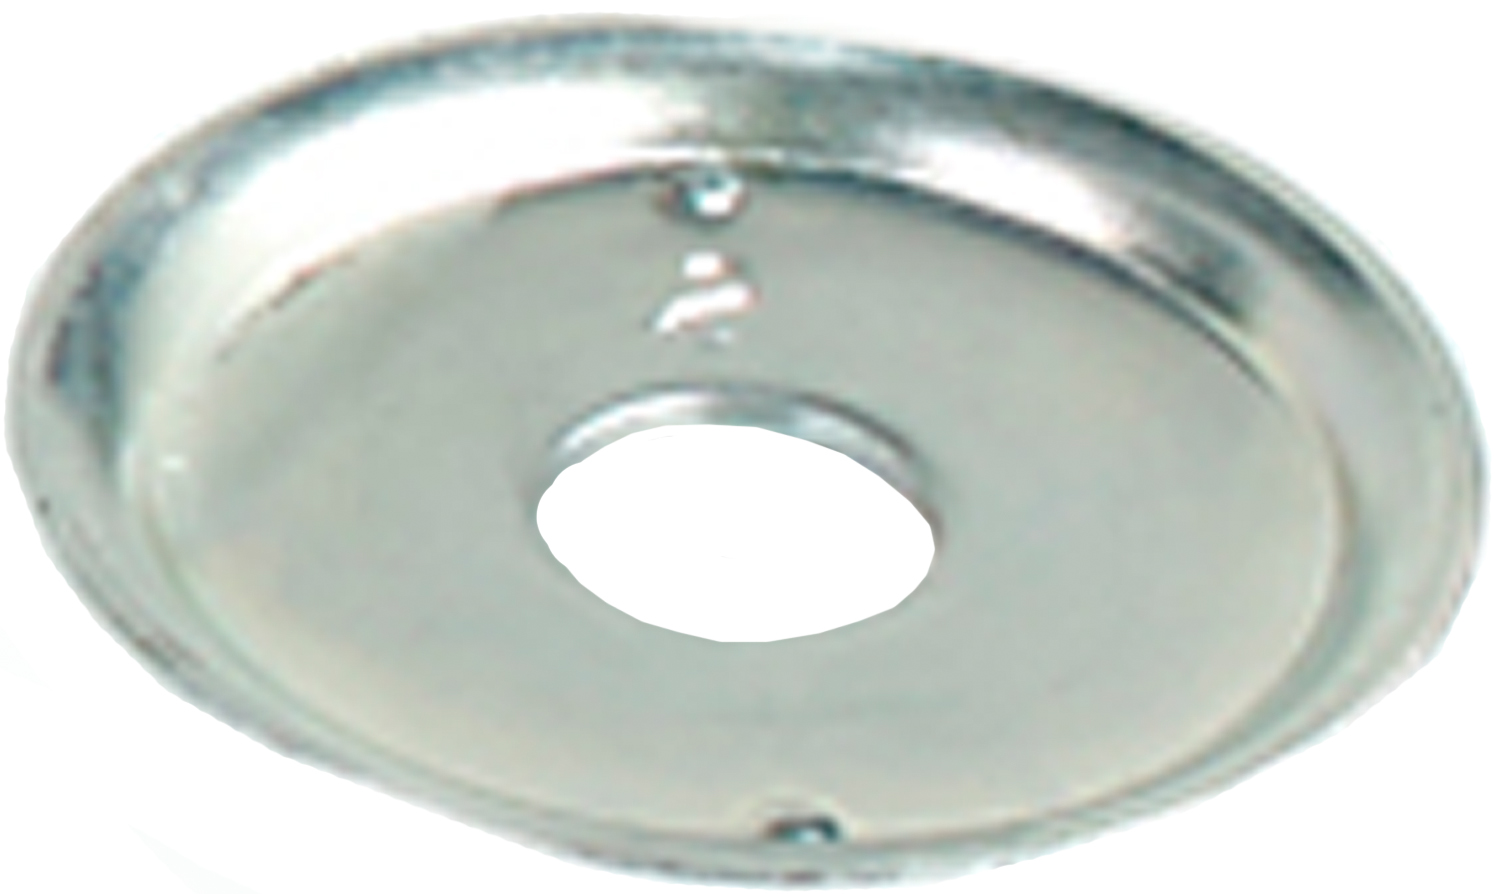 Accessory Drive Belt Pulley Dust Shield